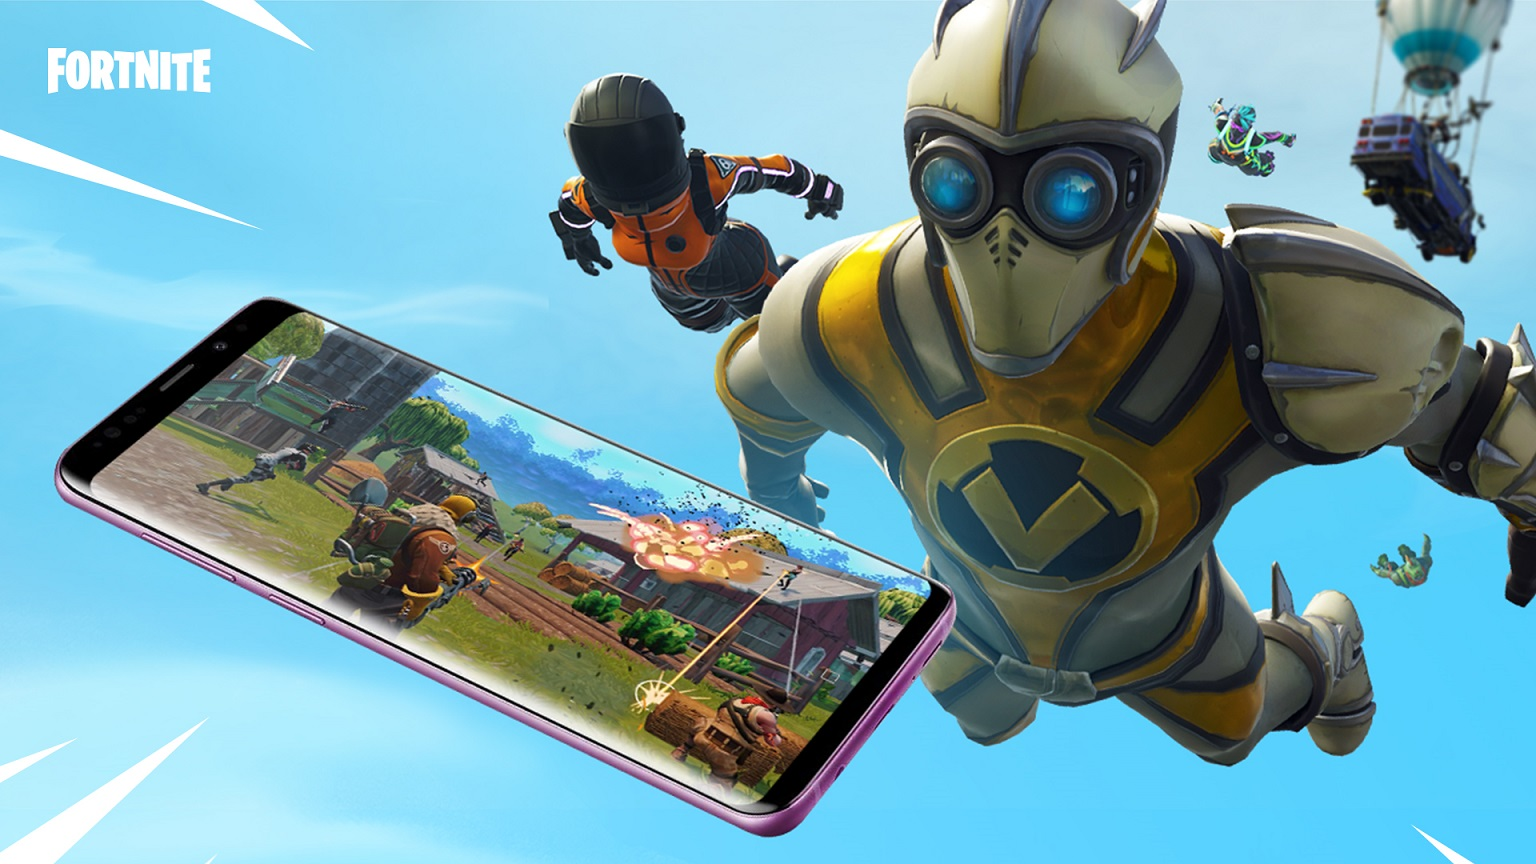 fortnite is now available on samsung galaxy phones - epic games fortnite samsung s10